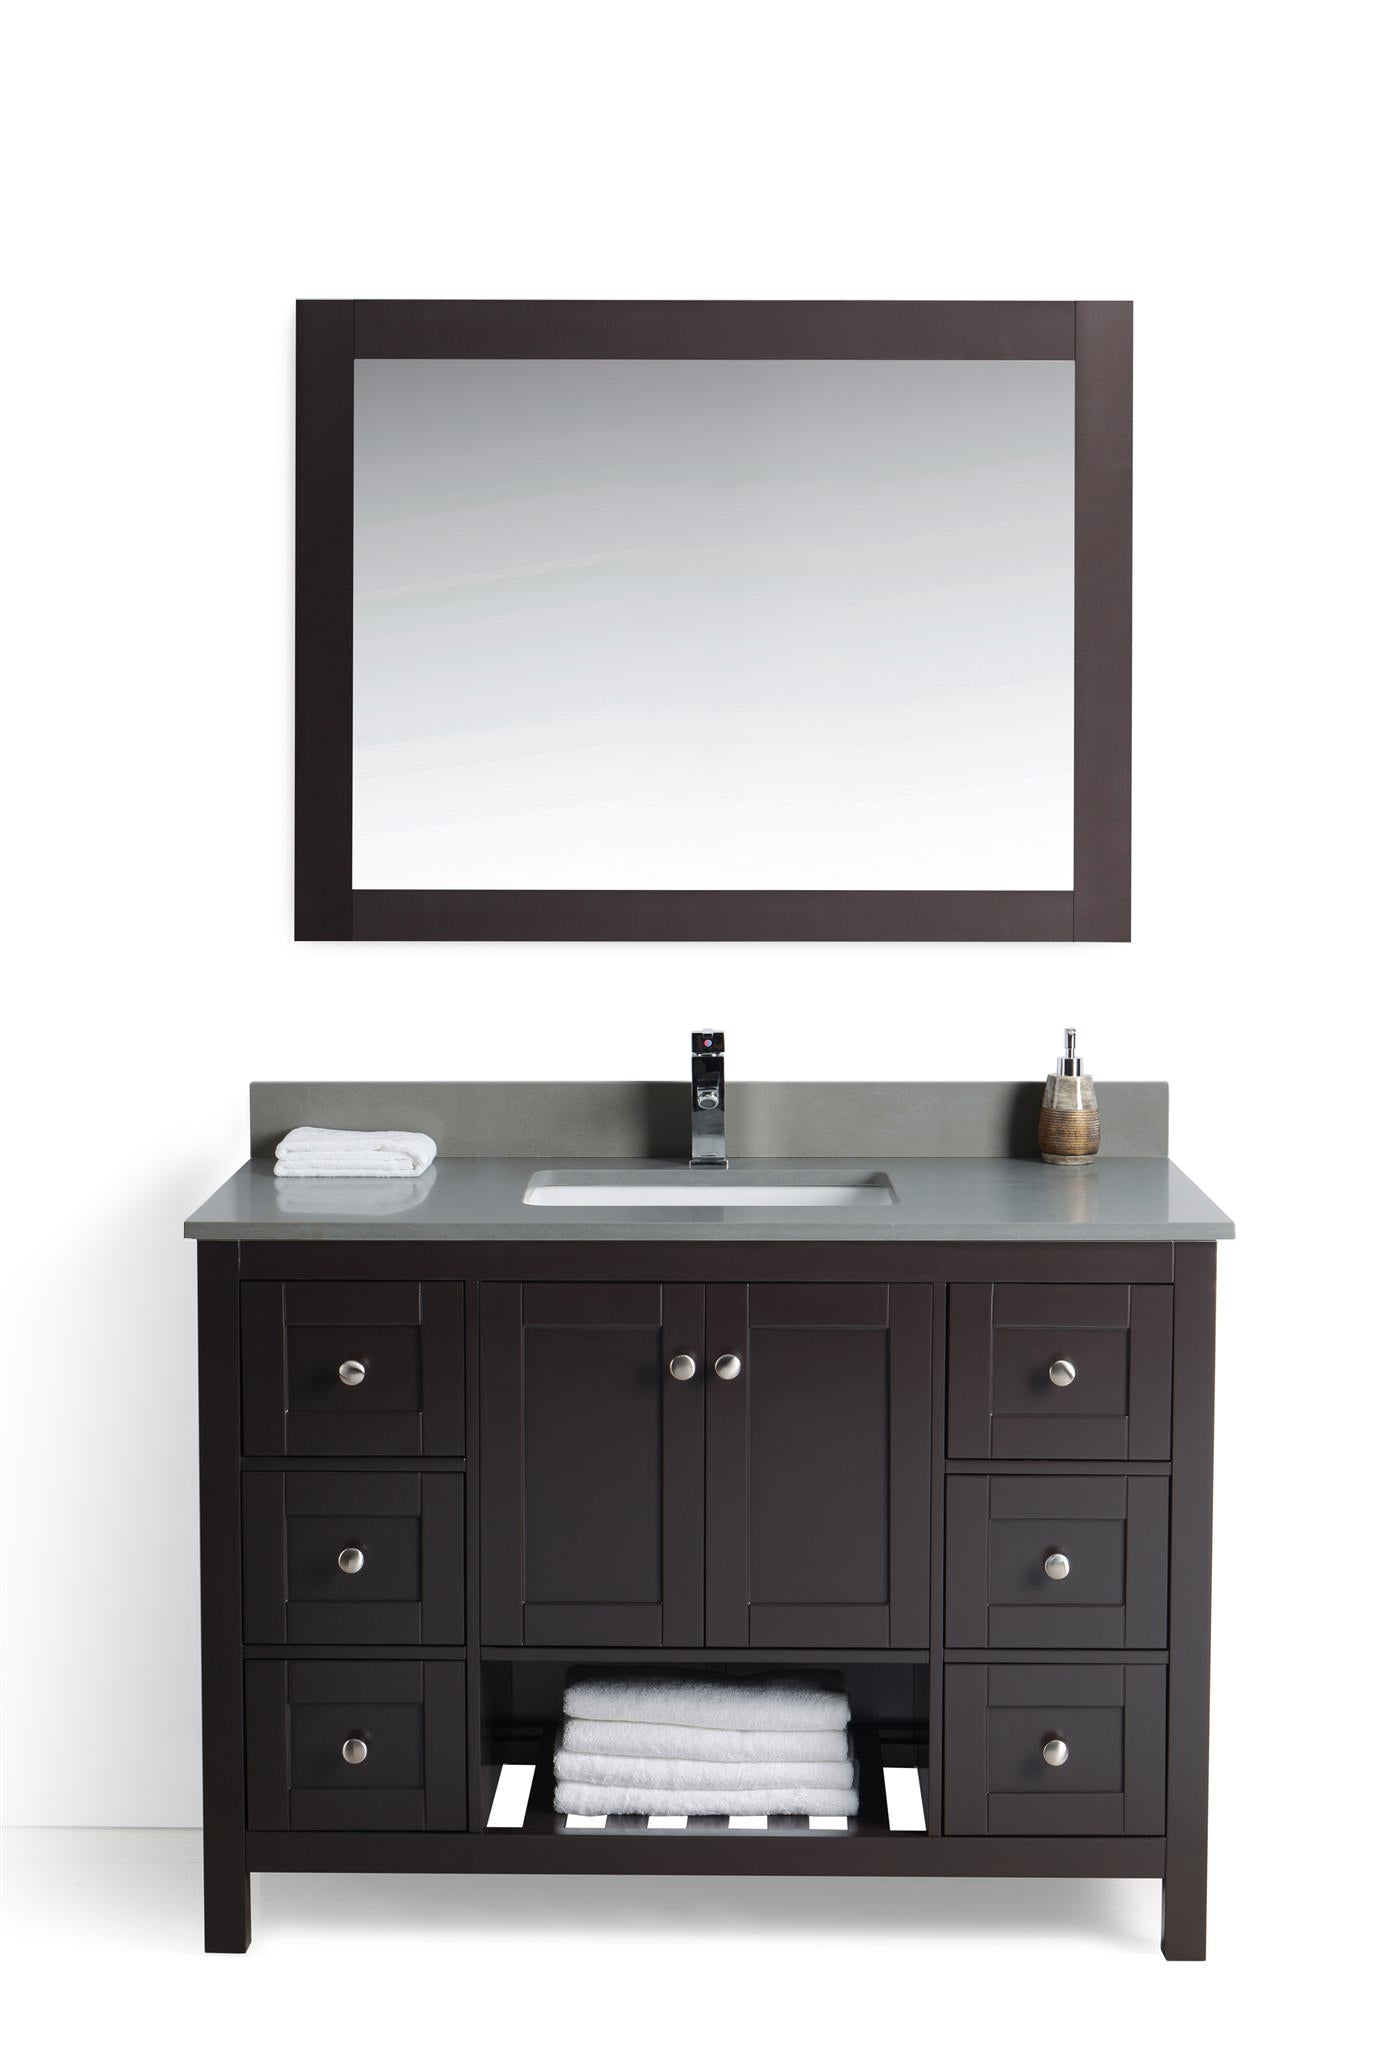 creamy sedwick bathroom antique vanity inch buy white saravi win top marble vanities adelina